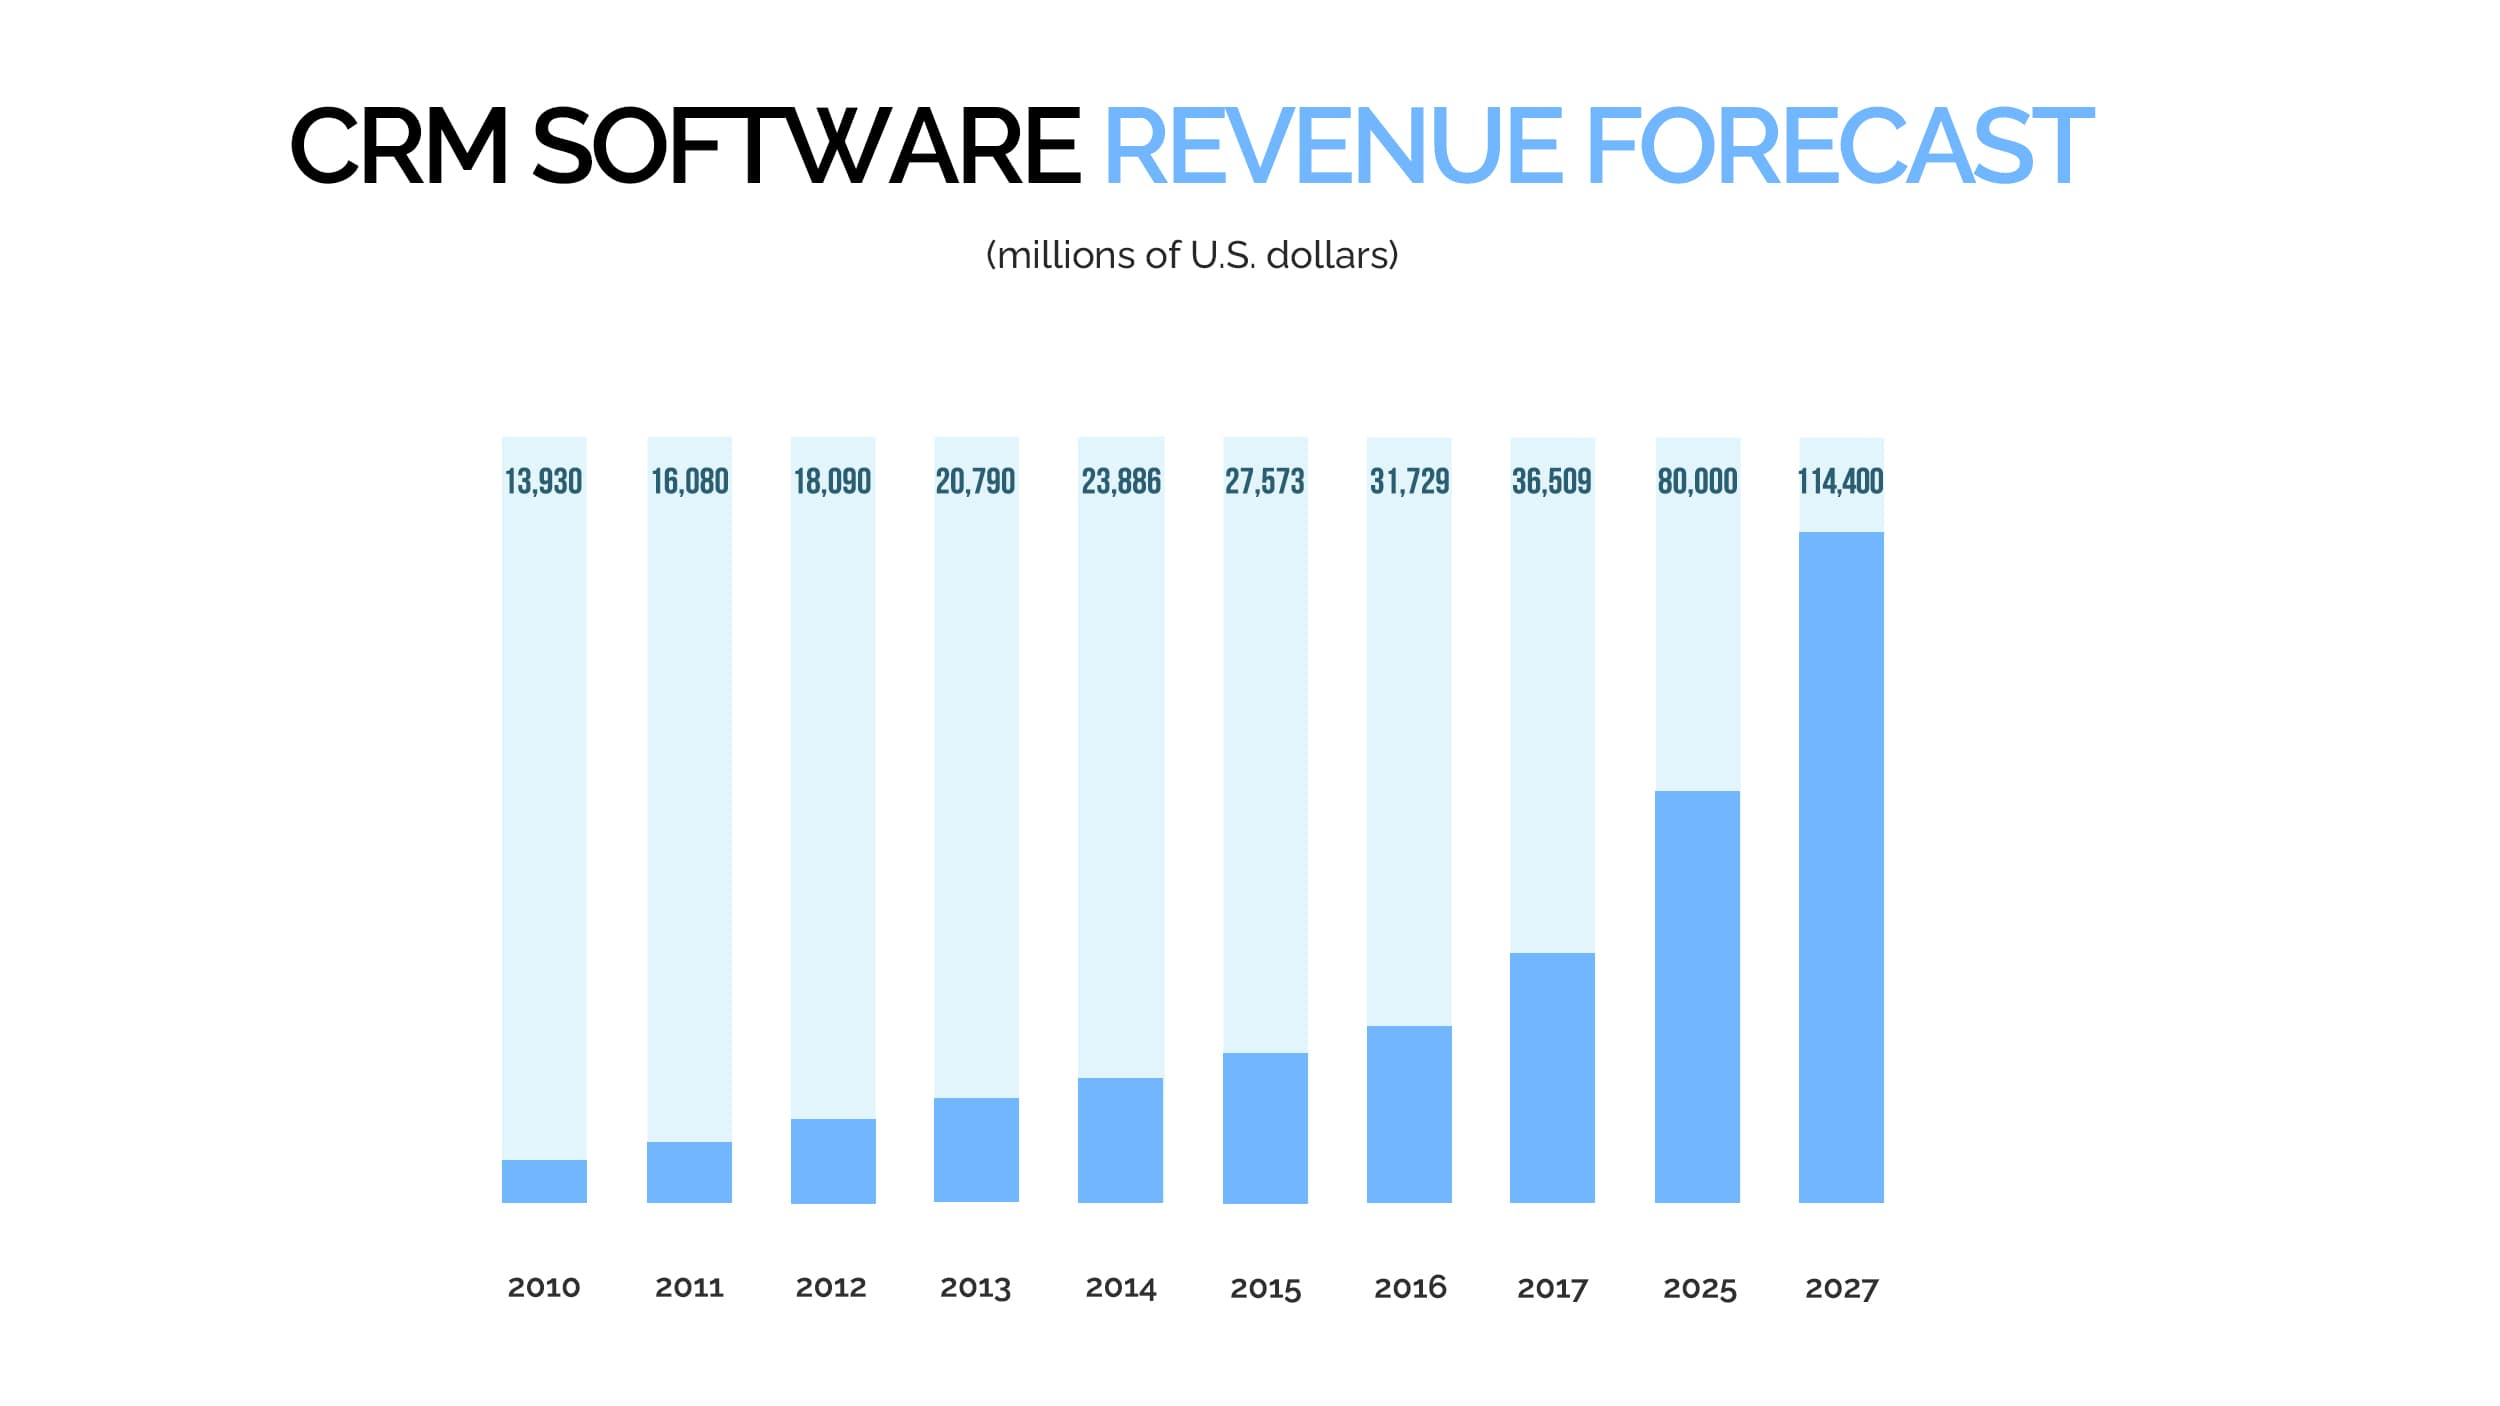 CRM software revenue forcast